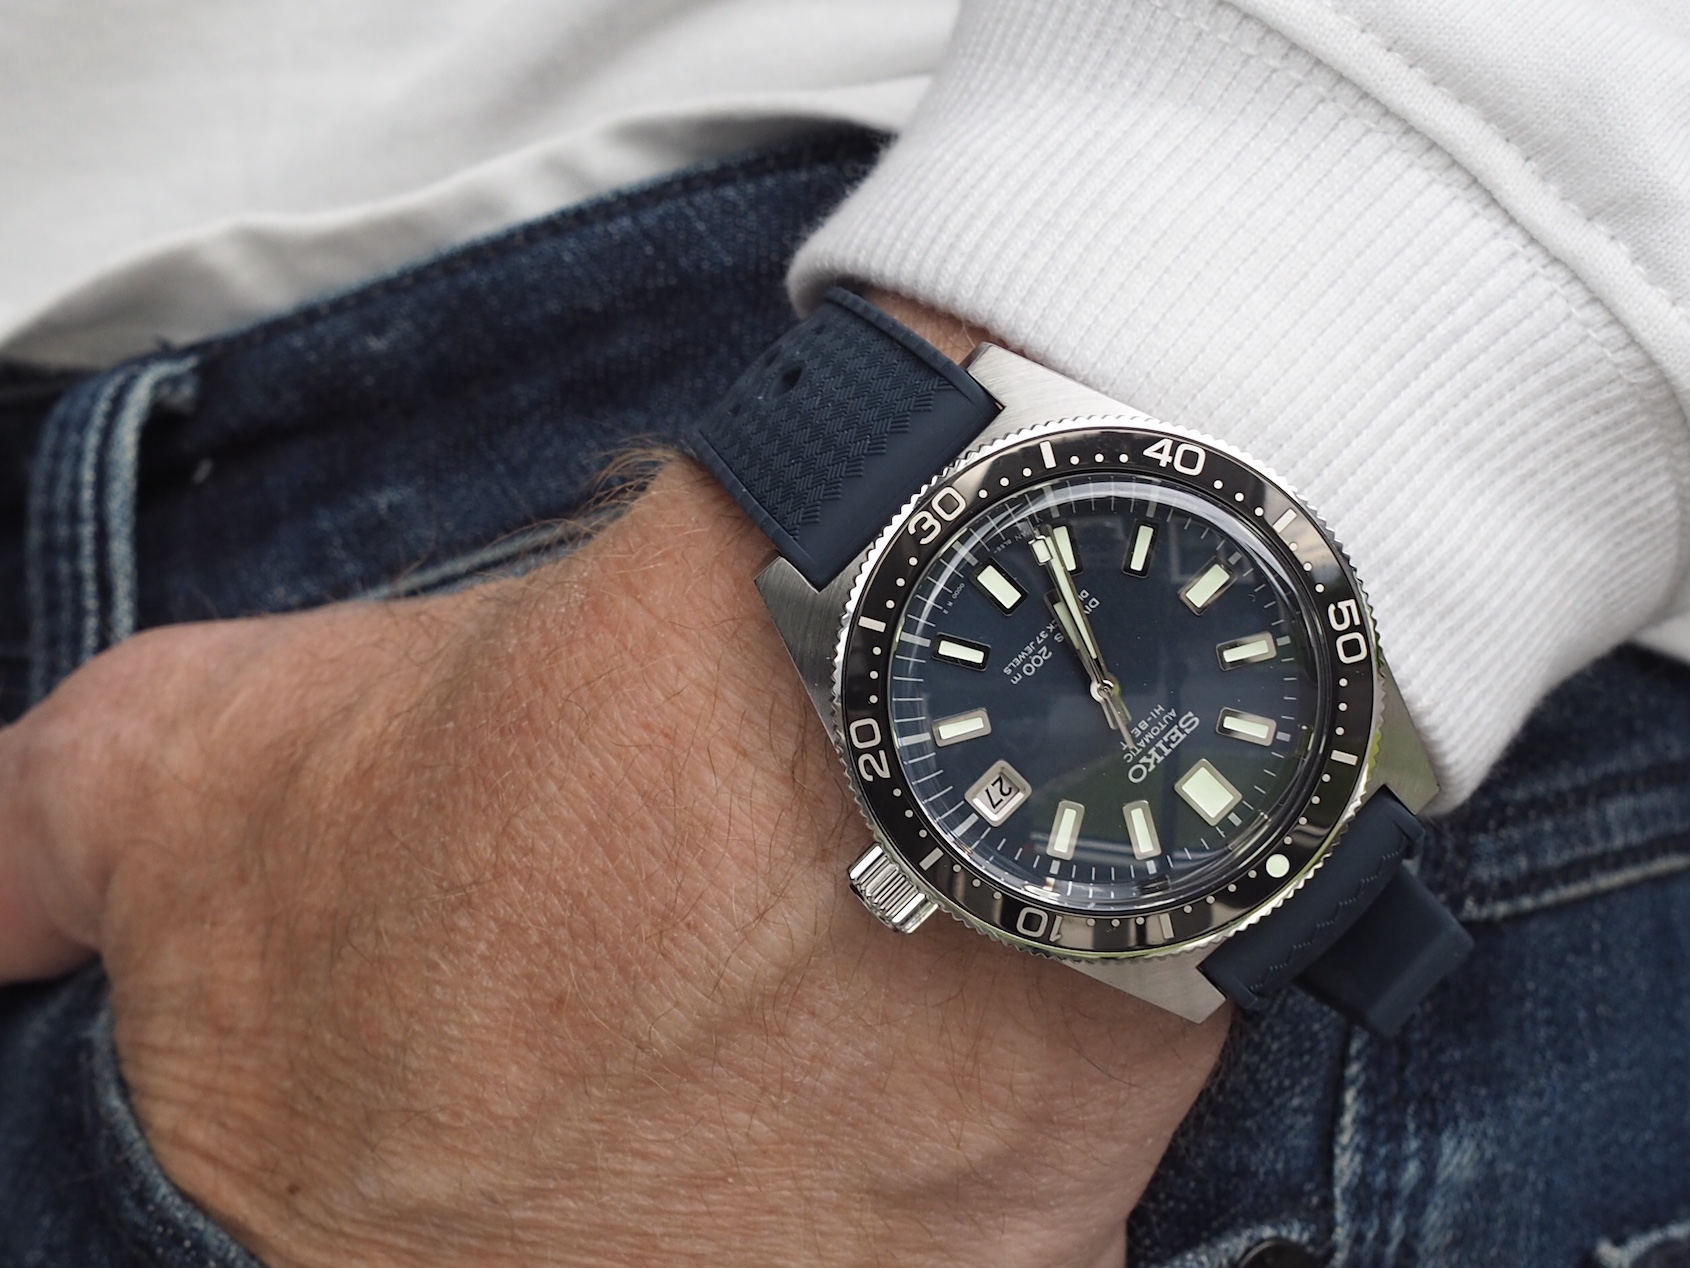 IN-DEPTH: A top-of-the line Seiko diver, SLA037 Vs. the lesser-seen Omega Seamaster 300, same price, different experience?